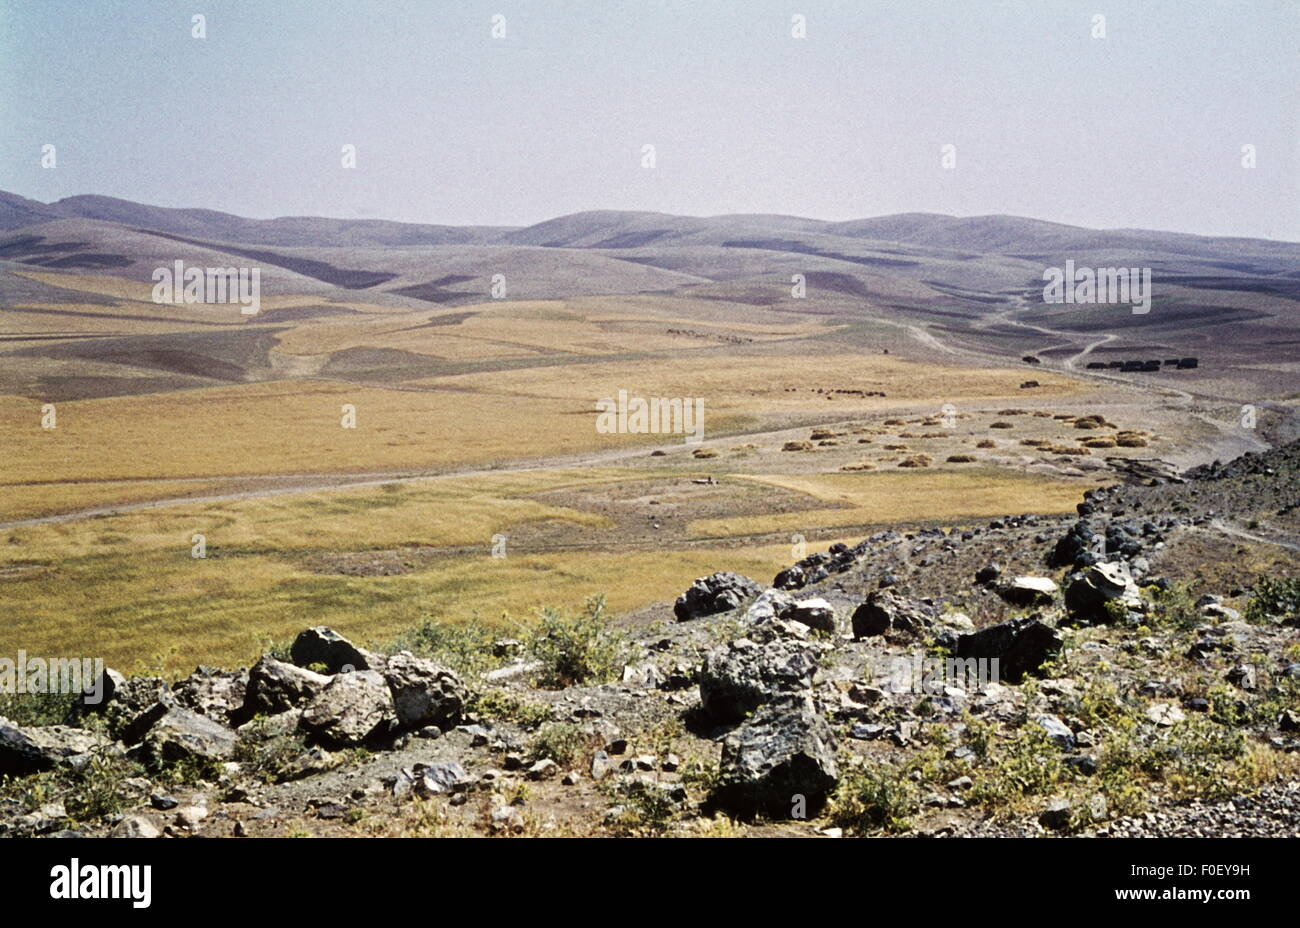 geography / travel, Iran, landscapes, typical uplands in the Stock Photo -  Alamy